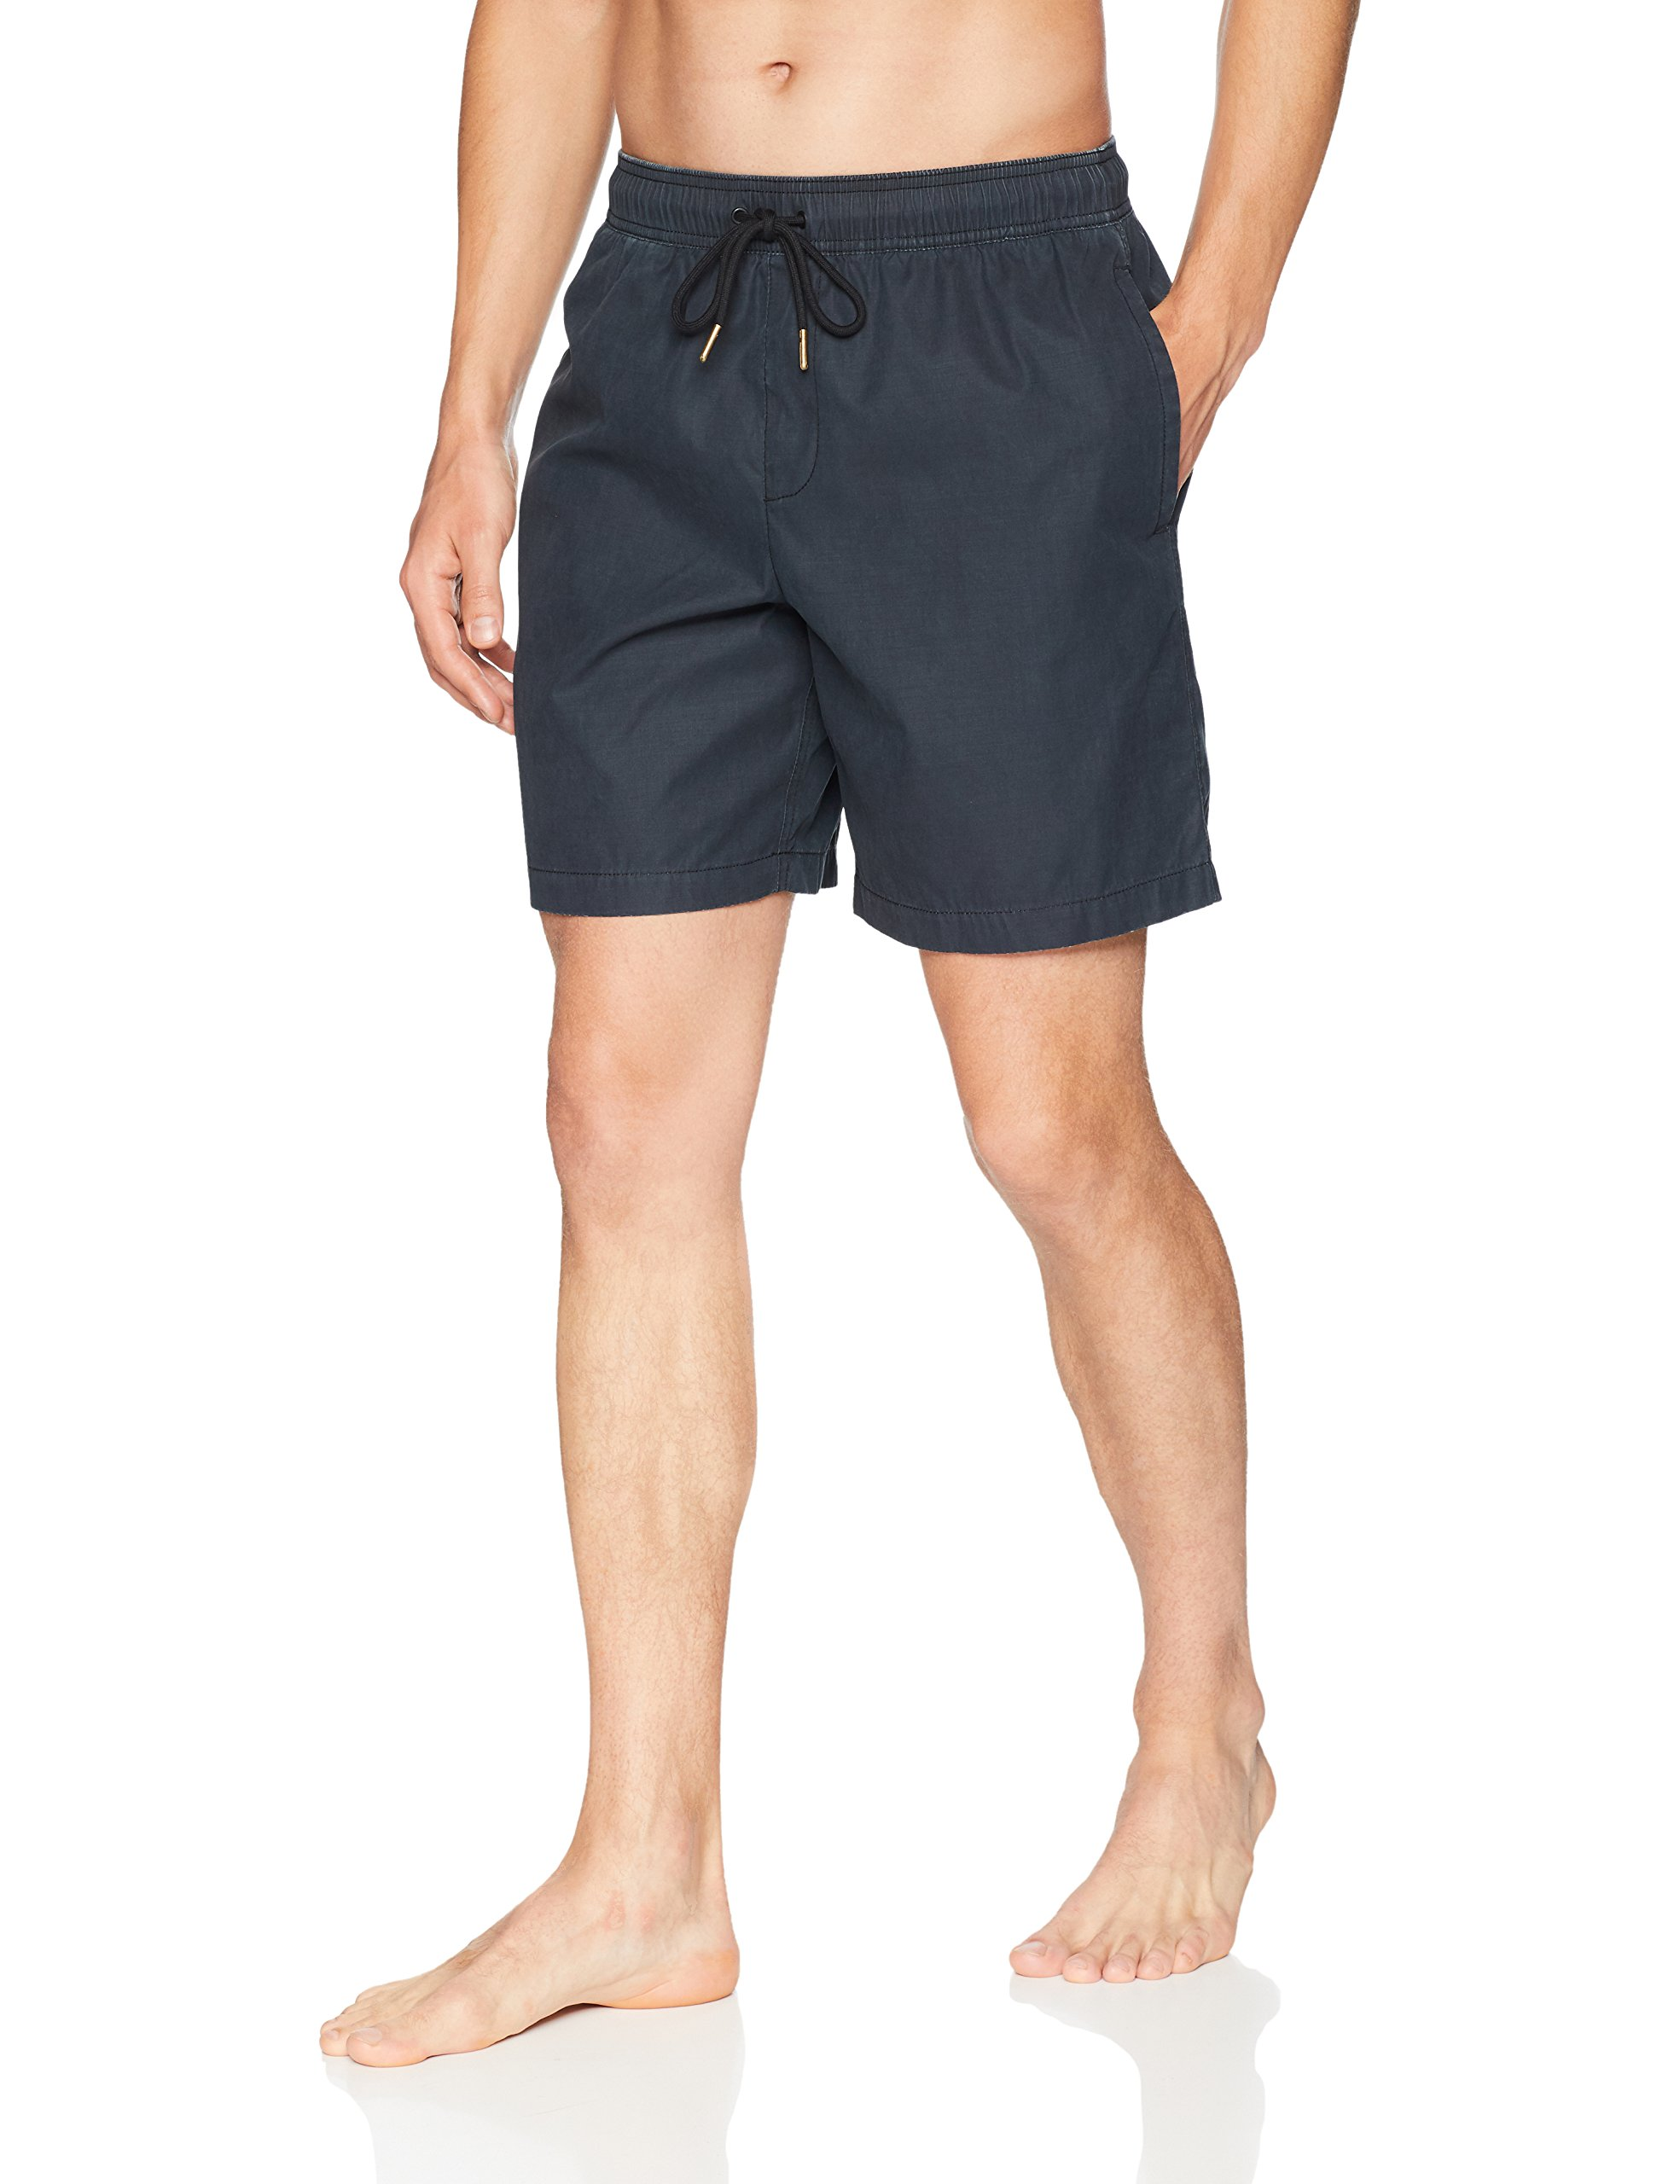 Goodthreads Men's 7'' Inseam Swim Trunk, Washed Black, X-Large